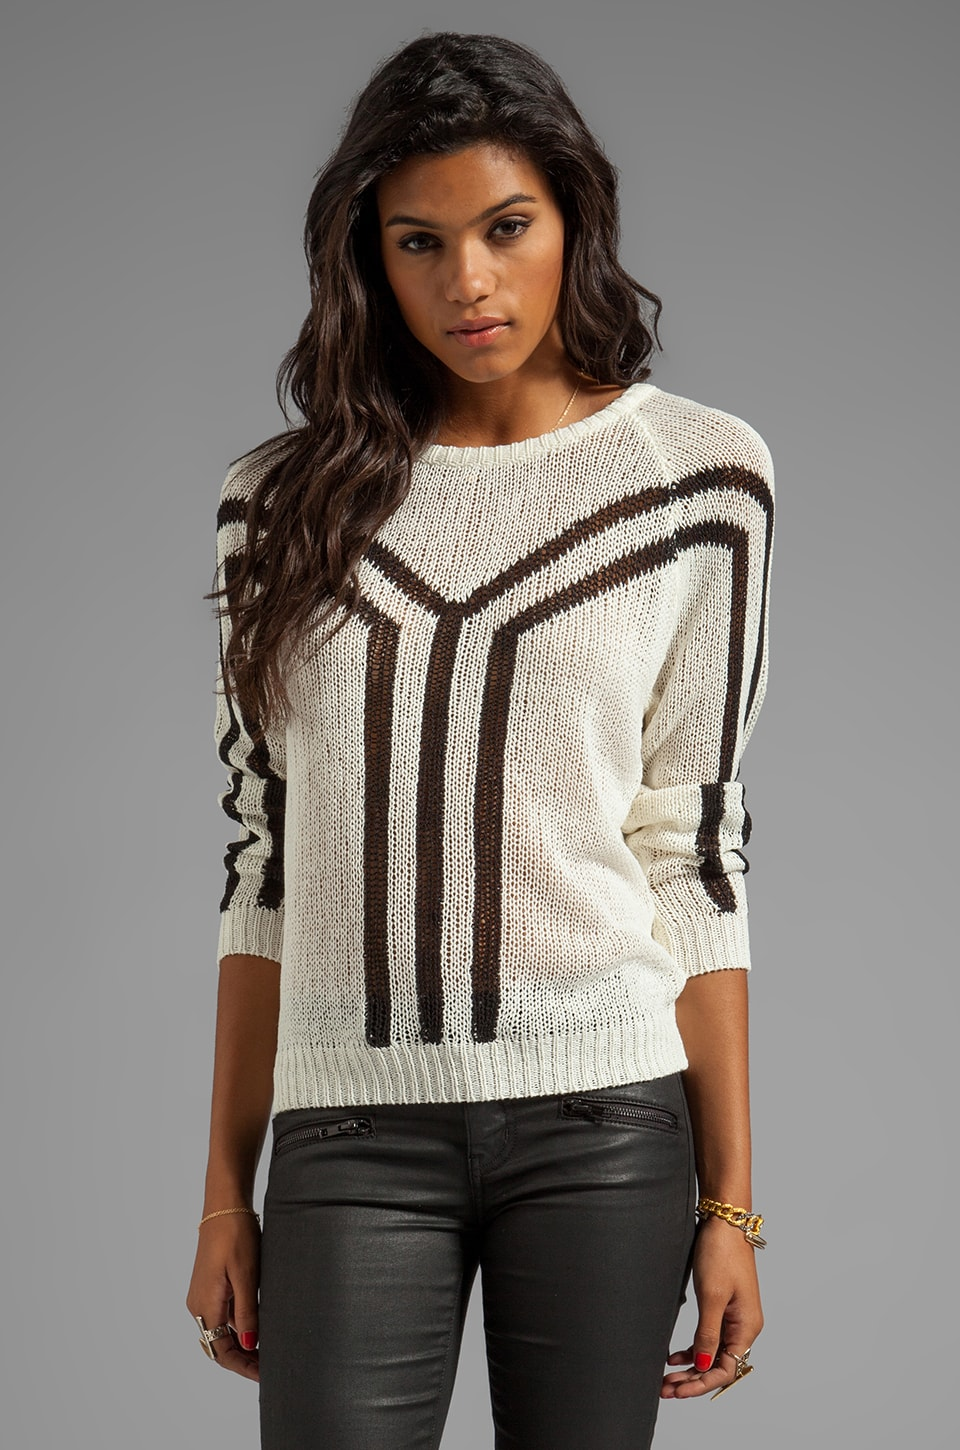 TOWNSEN Tallulah Sweater in Cream